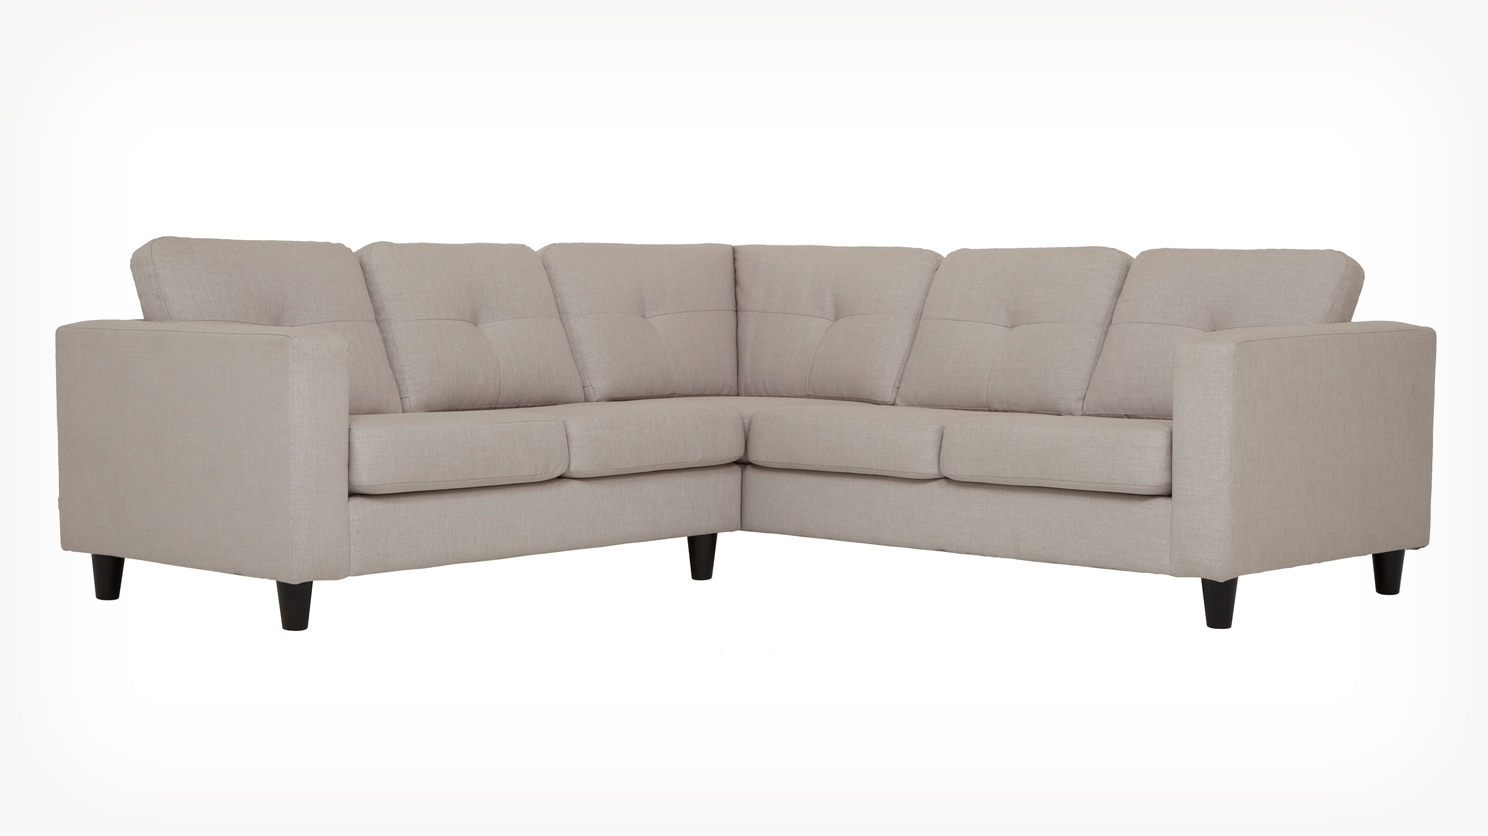 Solo 2 Piece Sectional Sofa – Fabric Inside Favorite Eq3 Sectional Sofas (View 16 of 20)